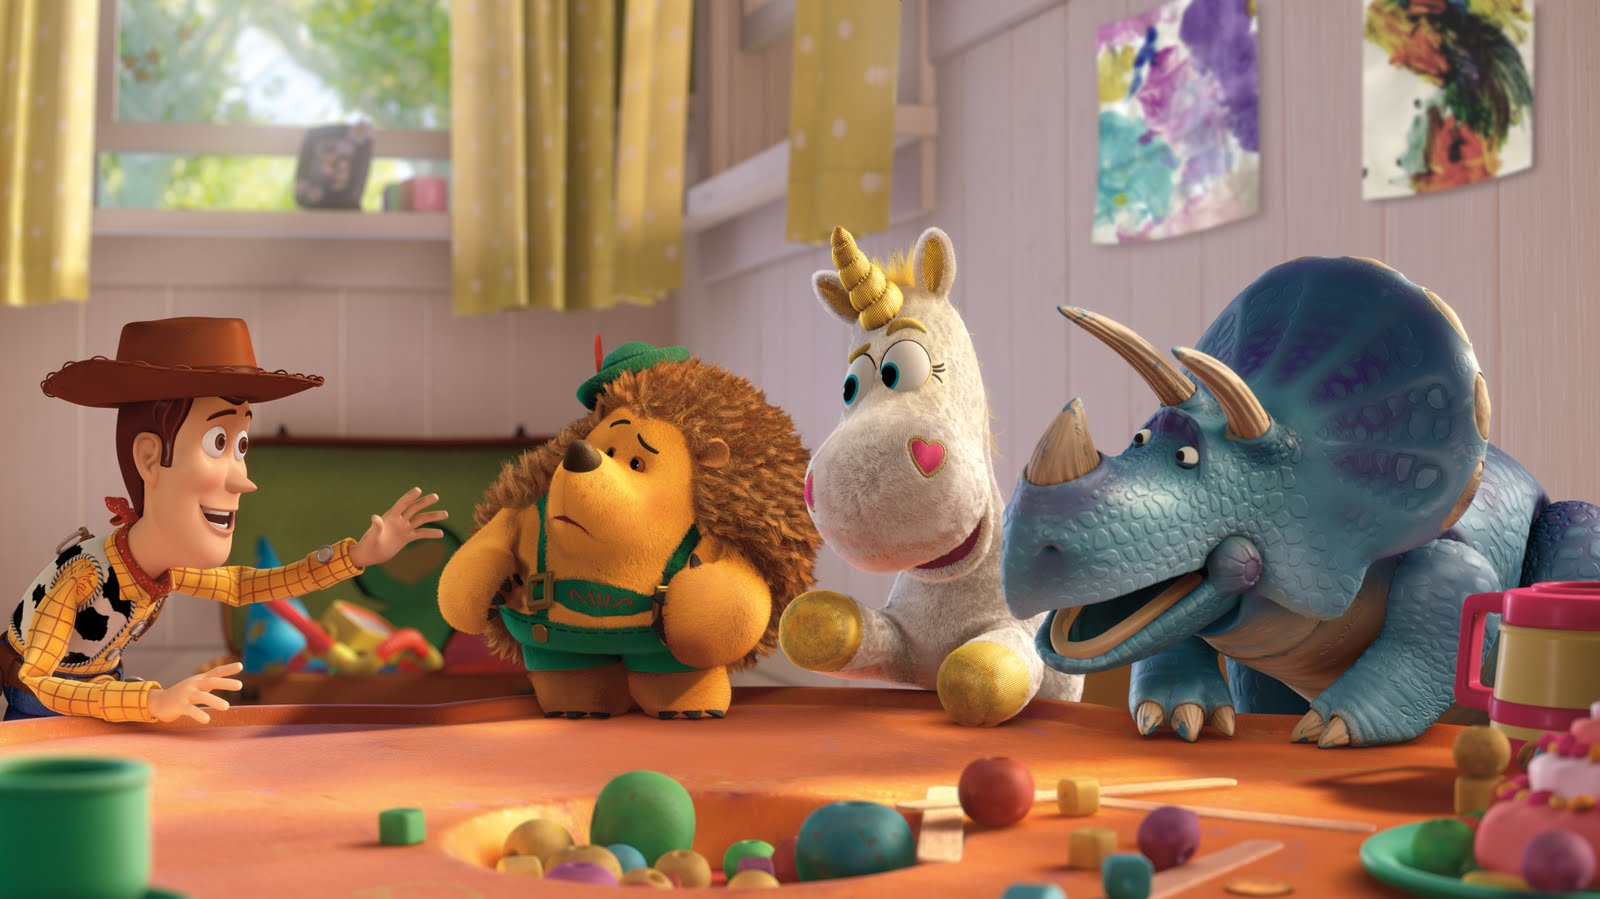 Toy Story Strong : New hi res stills from toy story released diszine